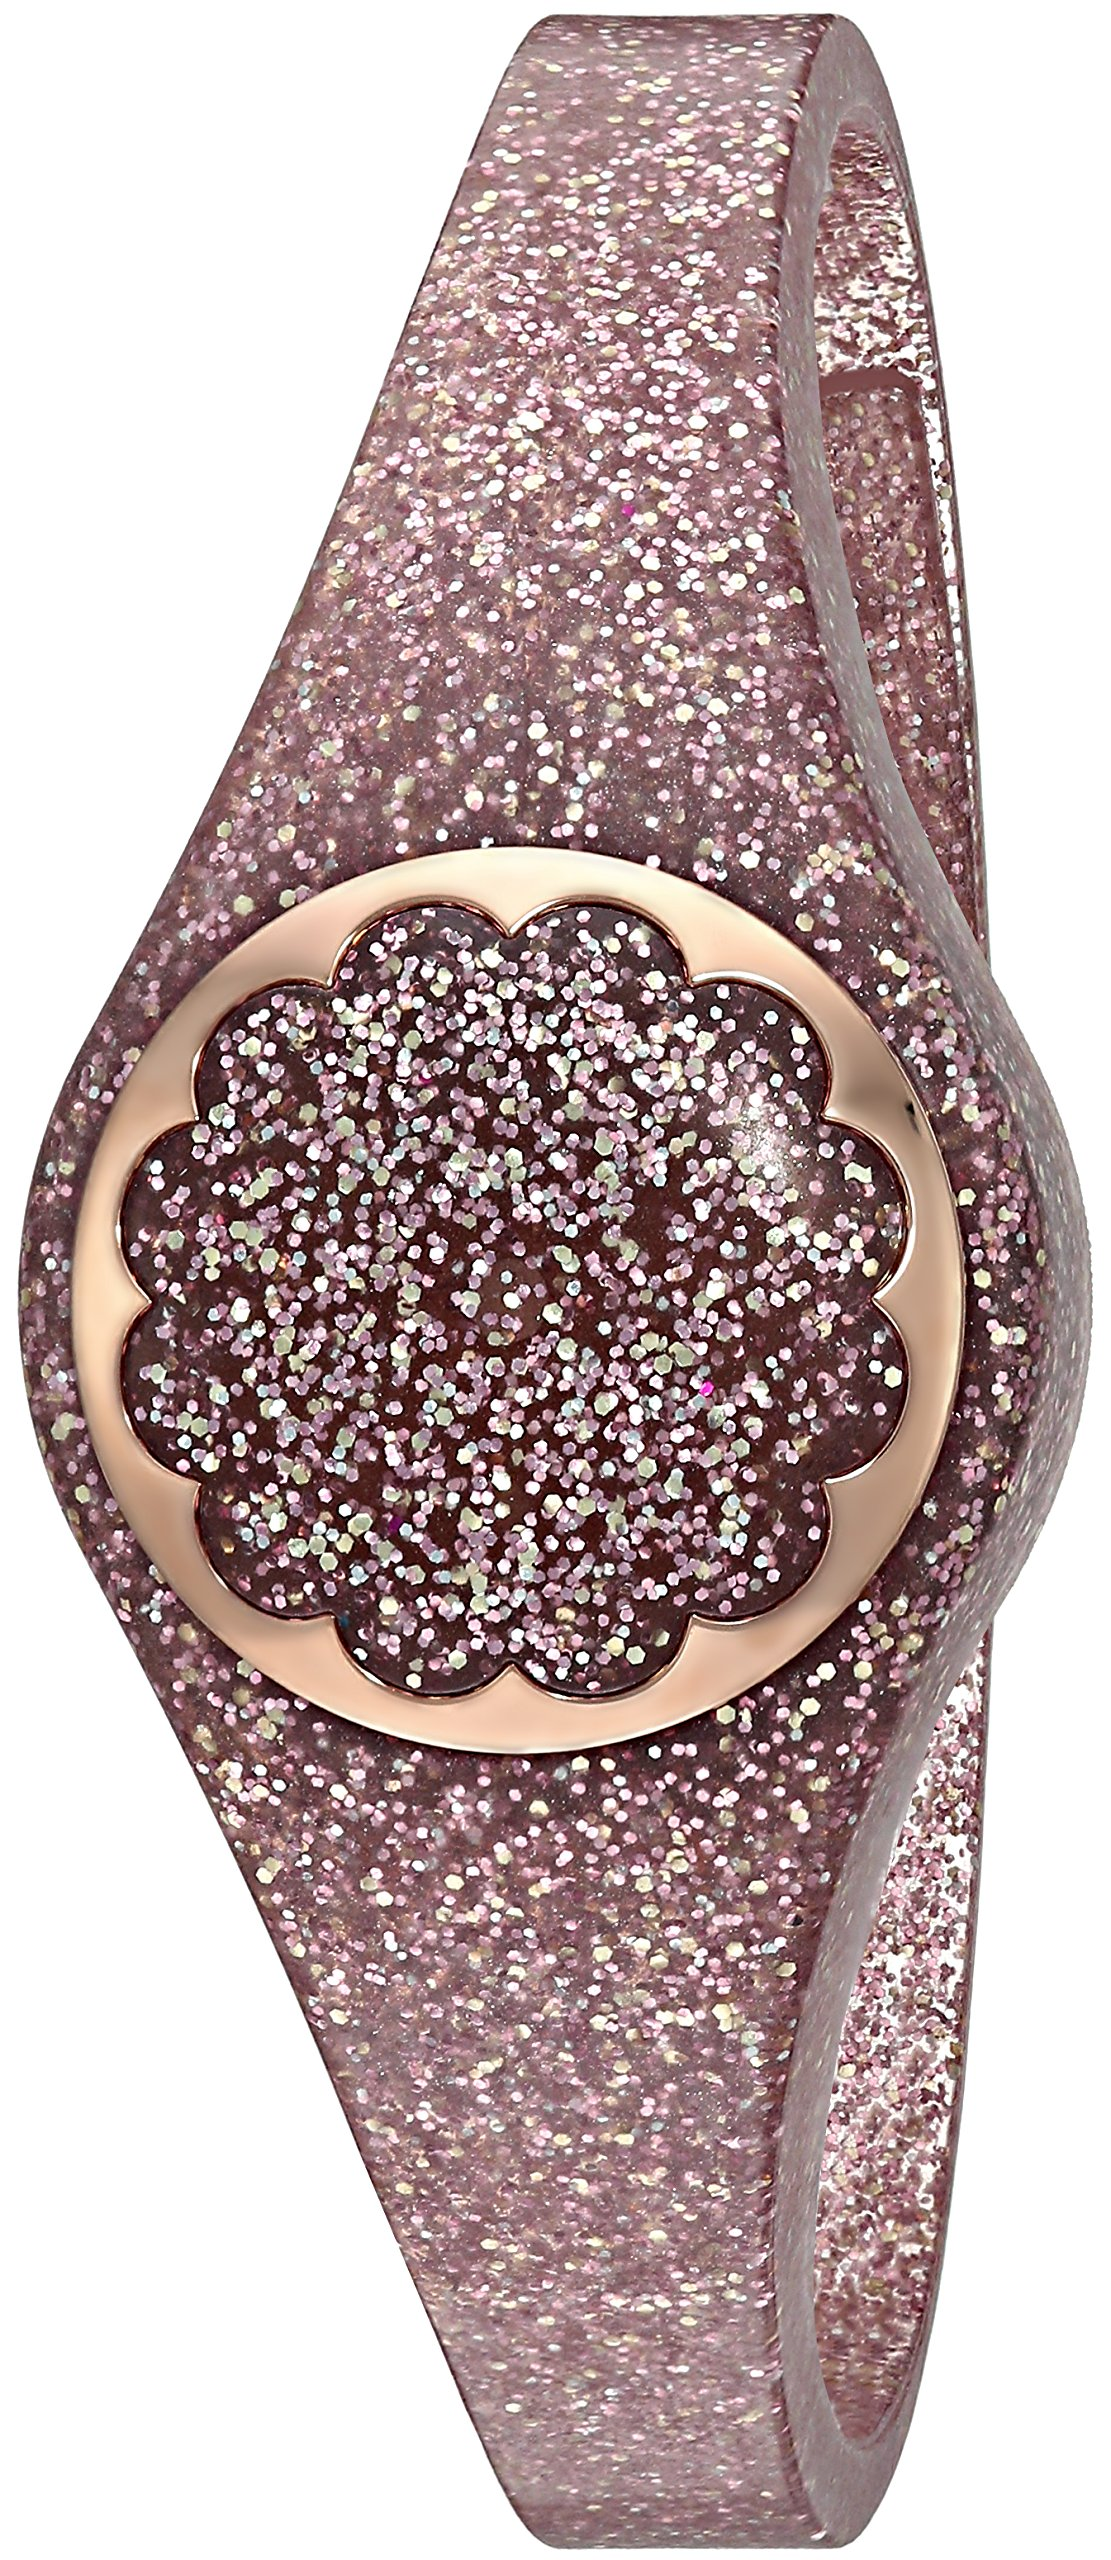 Kate Spade New York rose gold glitter scallop activity tracker by Kate Spade New York (Image #1)